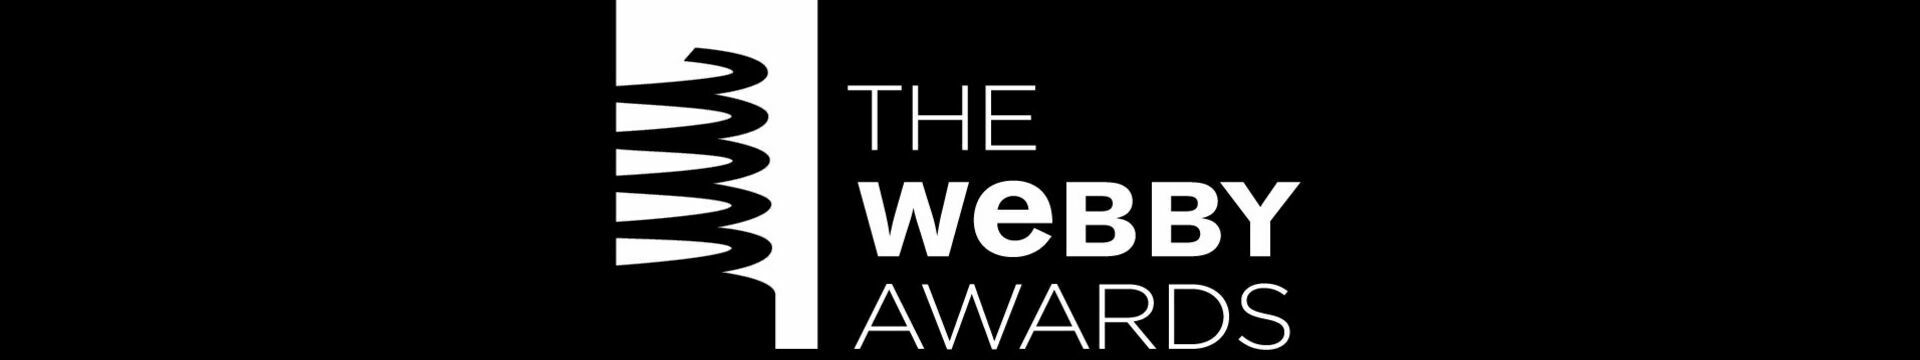 Catching up with The Webby Awards – Best Media Strategy of 2016